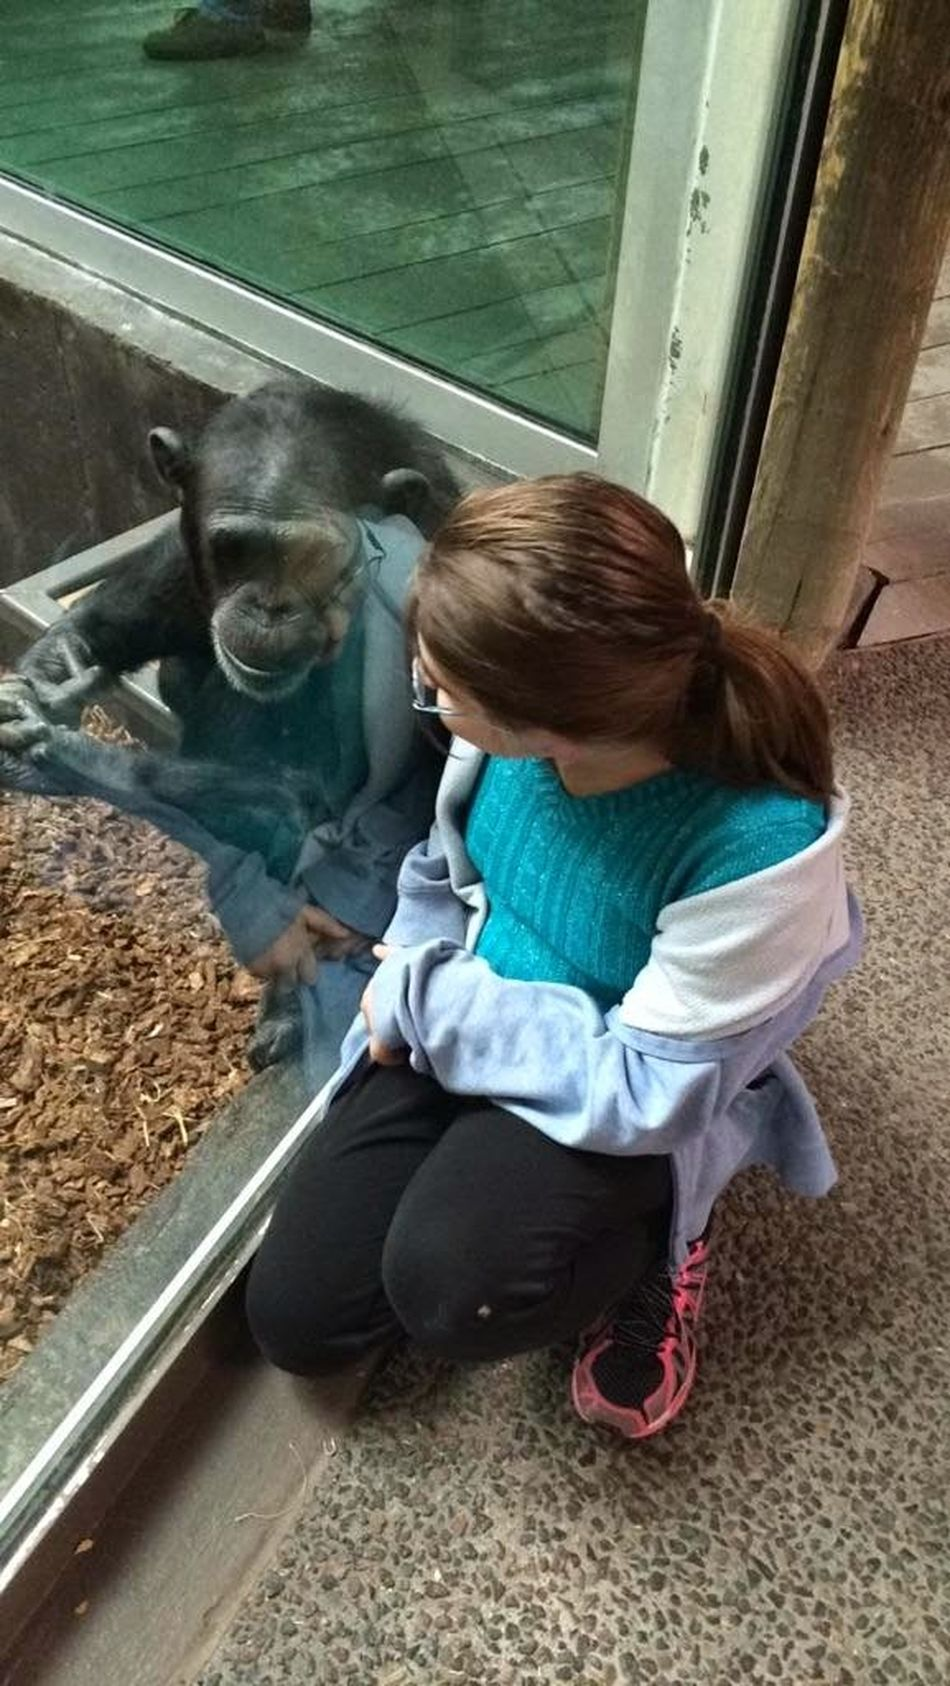 Full Length One Person High Angle View Sitting One Girl Only Outdoors Day Nature Glass Windows With Reflections Glass Reflections Friendship Animal Themes Making Friends Bonding Mammal One Animal Child And Wildlife Chimpansee Looking Through Girl Animal Reflections Close-up Togetherness Childhood